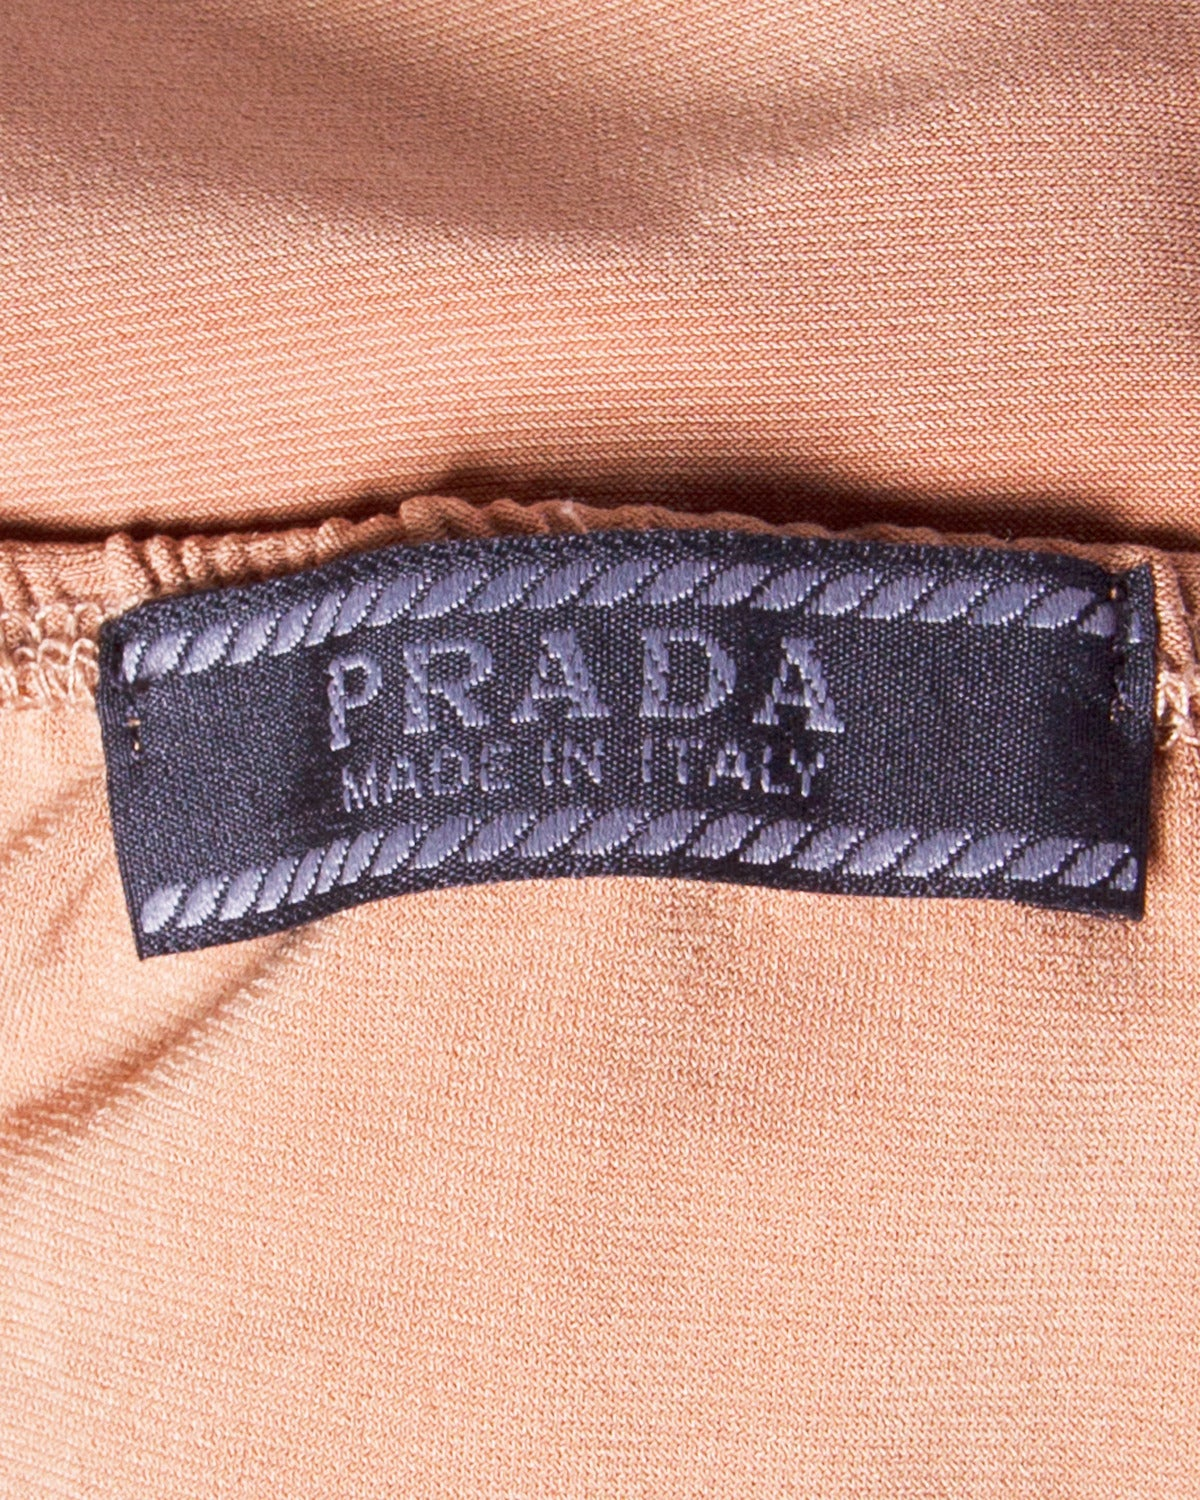 Unworn Prada Deadstock Tan Jersey Knit Open Back Halter Dress For Sale 3